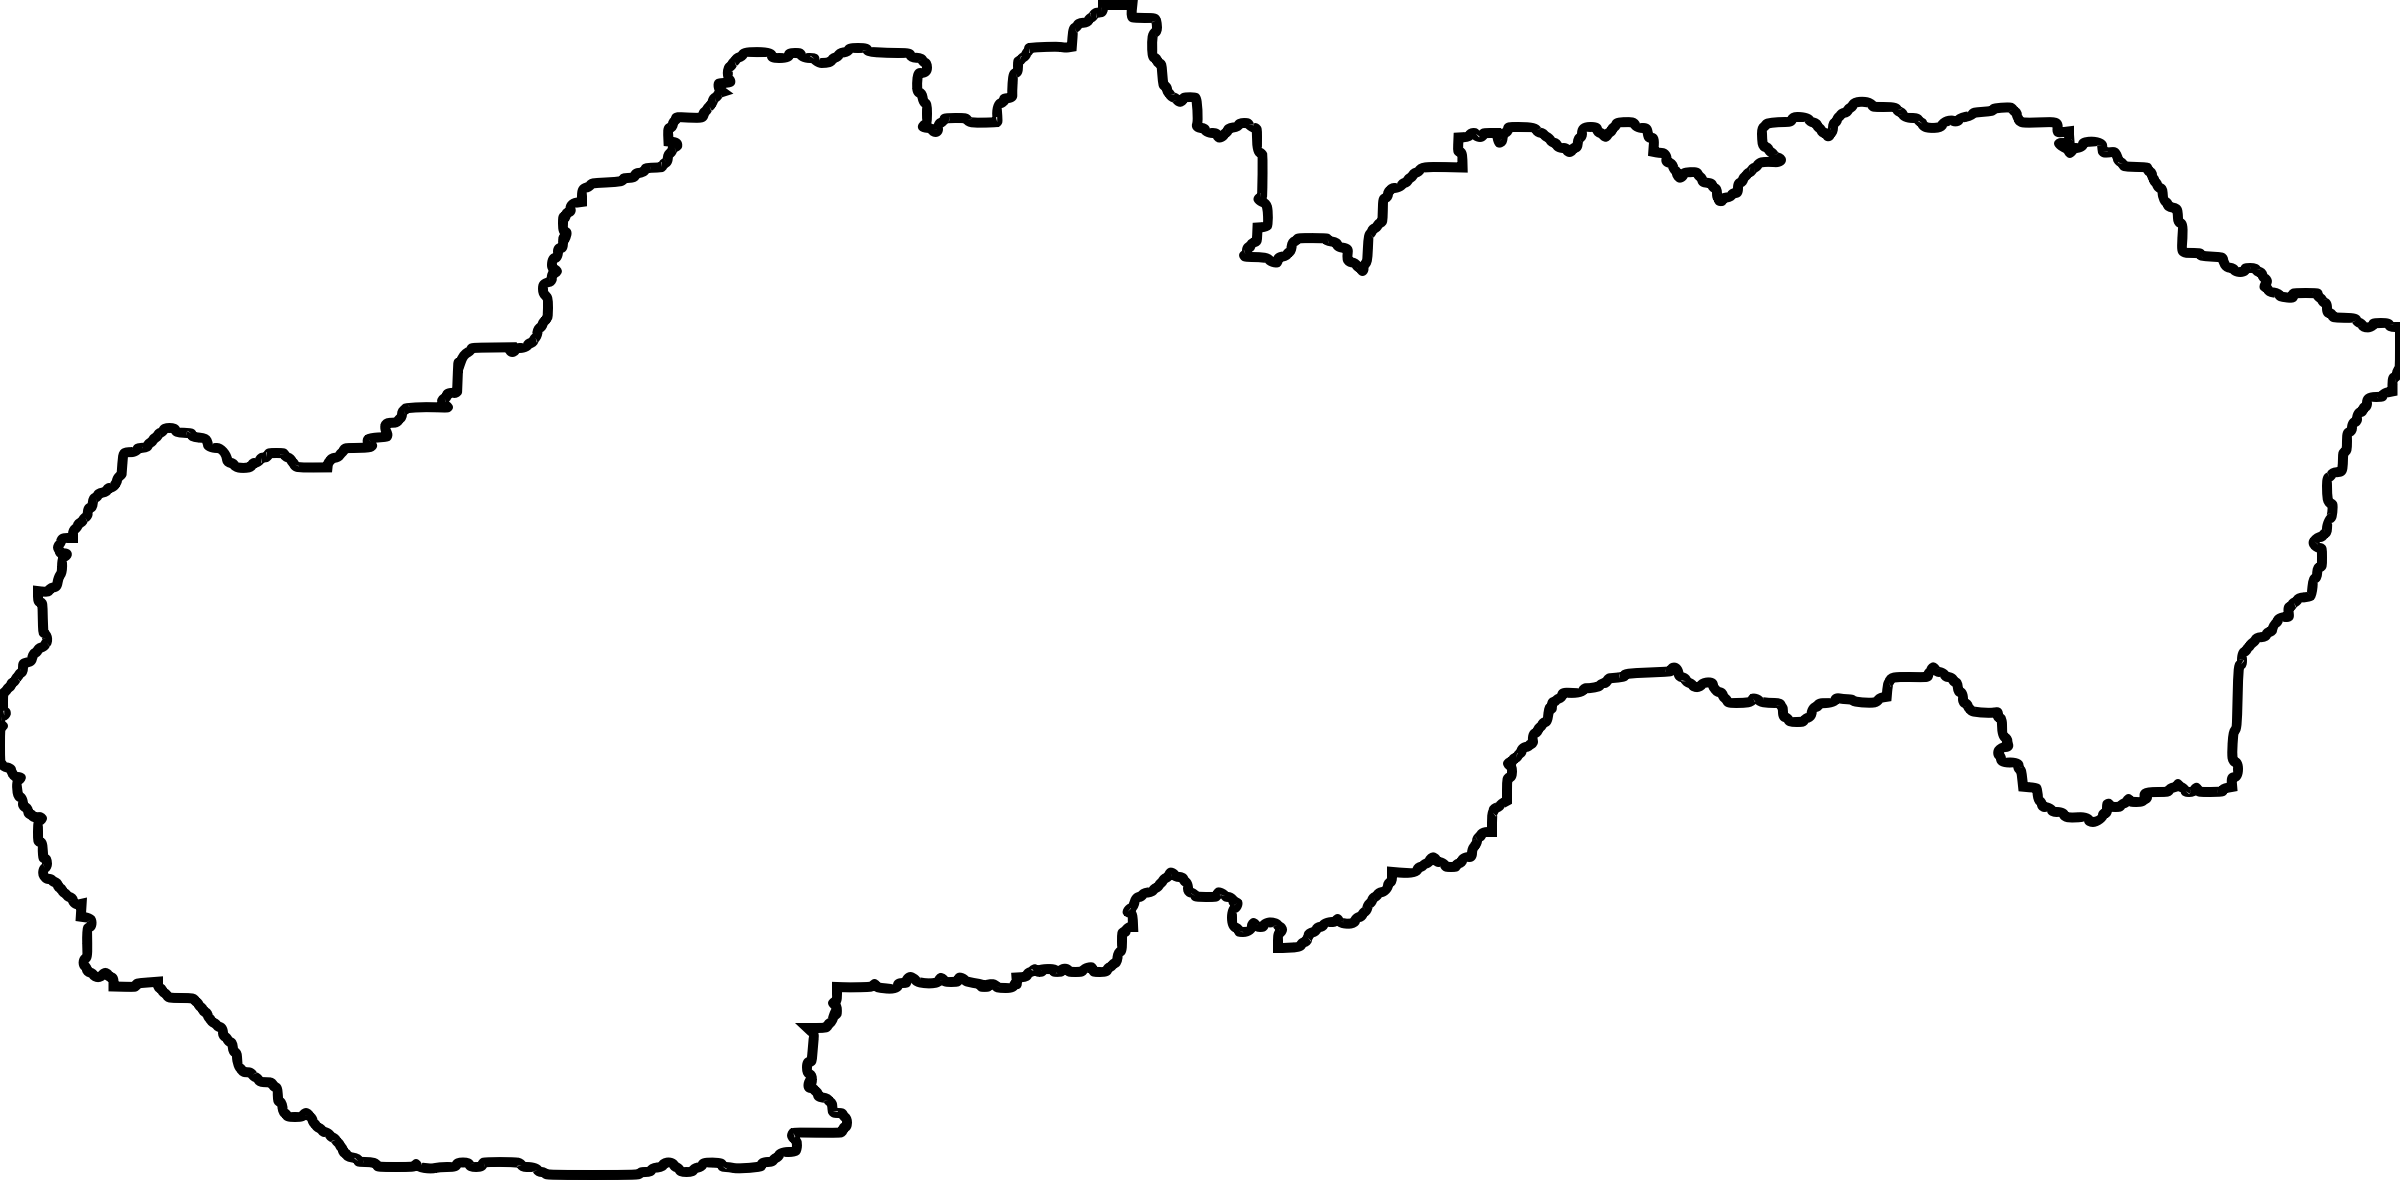 Of slovakia with white. Europe clipart outline